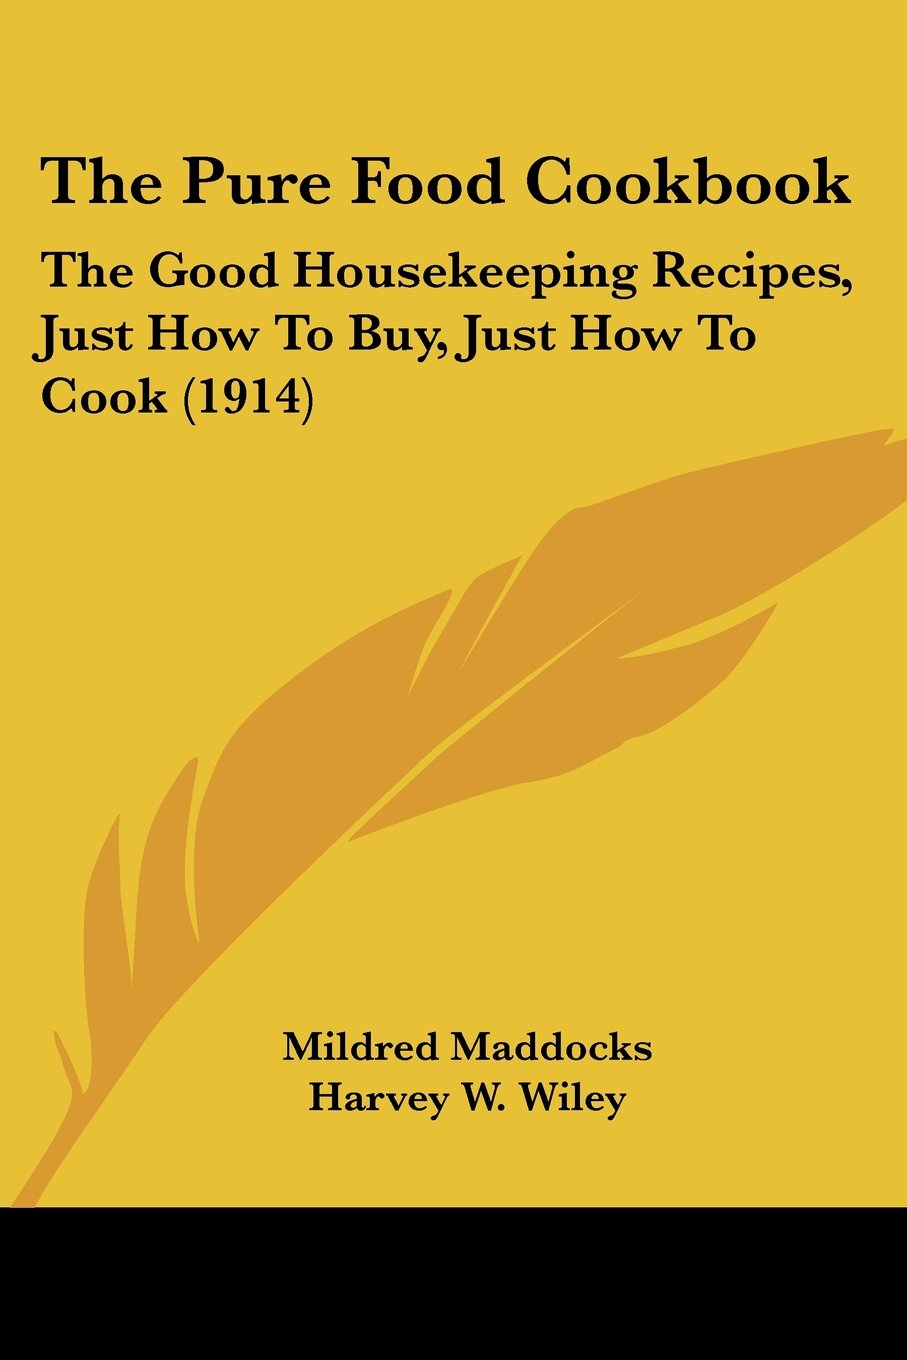 Download The Pure Food Cookbook: The Good Housekeeping Recipes, Just How To Buy, Just How To Cook (1914) PDF